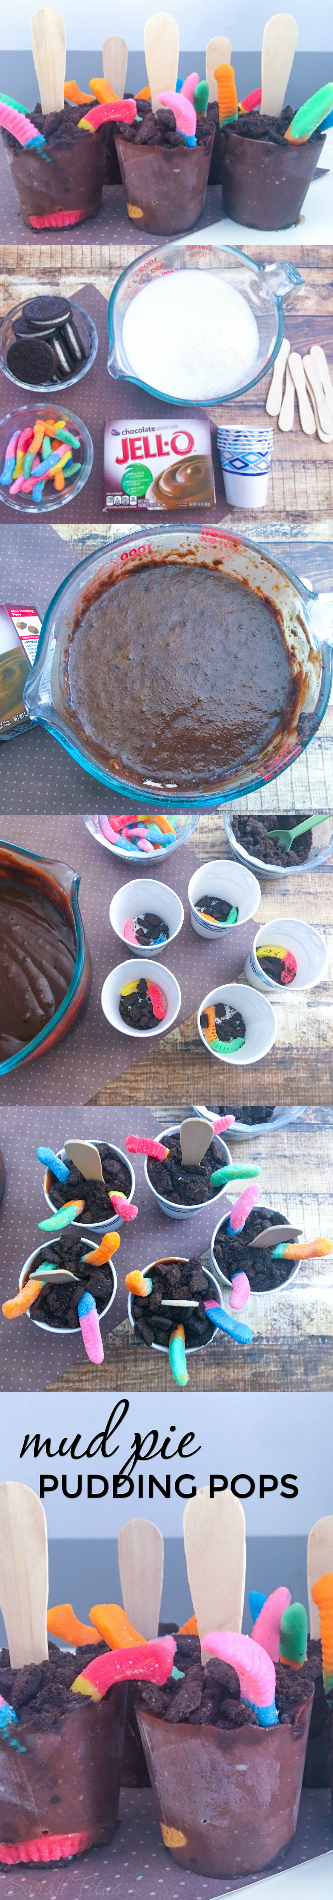 Anyone ever have Mud Pie as a kid? Here's an updated twist on an old fashioned favorite, these Mud Pie Pudding Pops are super cute and easy to make!